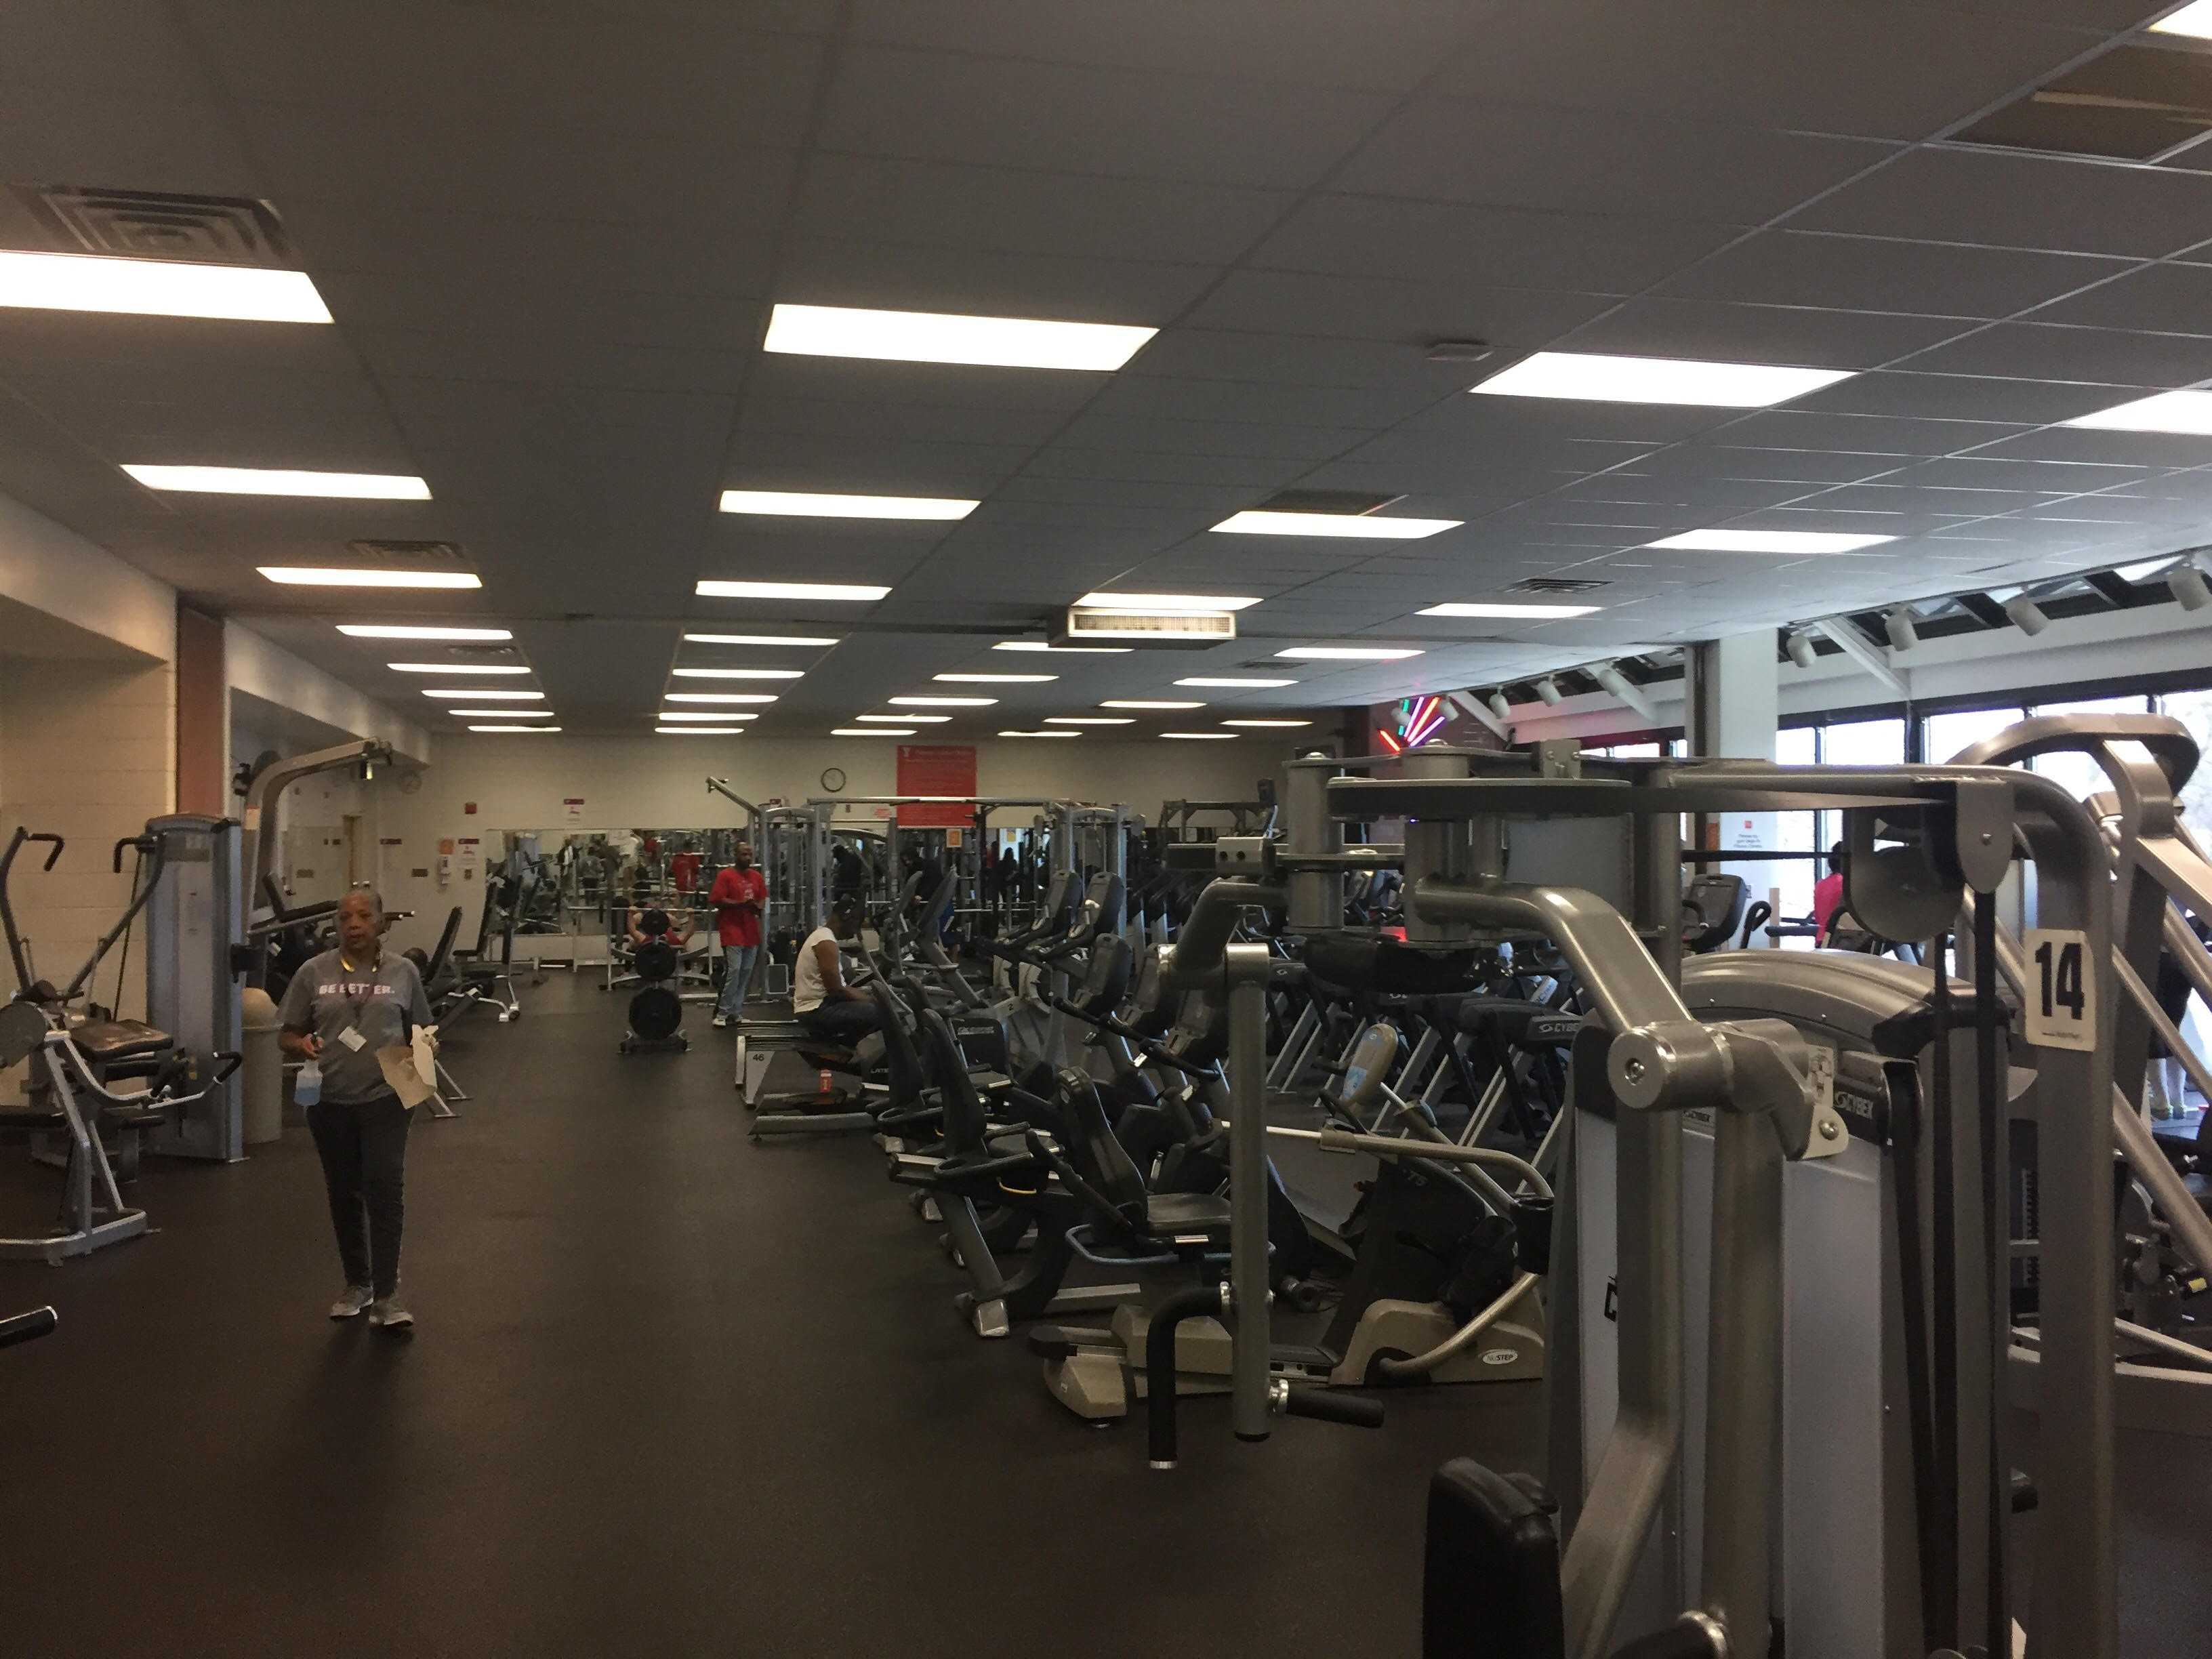 Among its many facilities, the South Side YMCA offers a well-equipped weight training room.